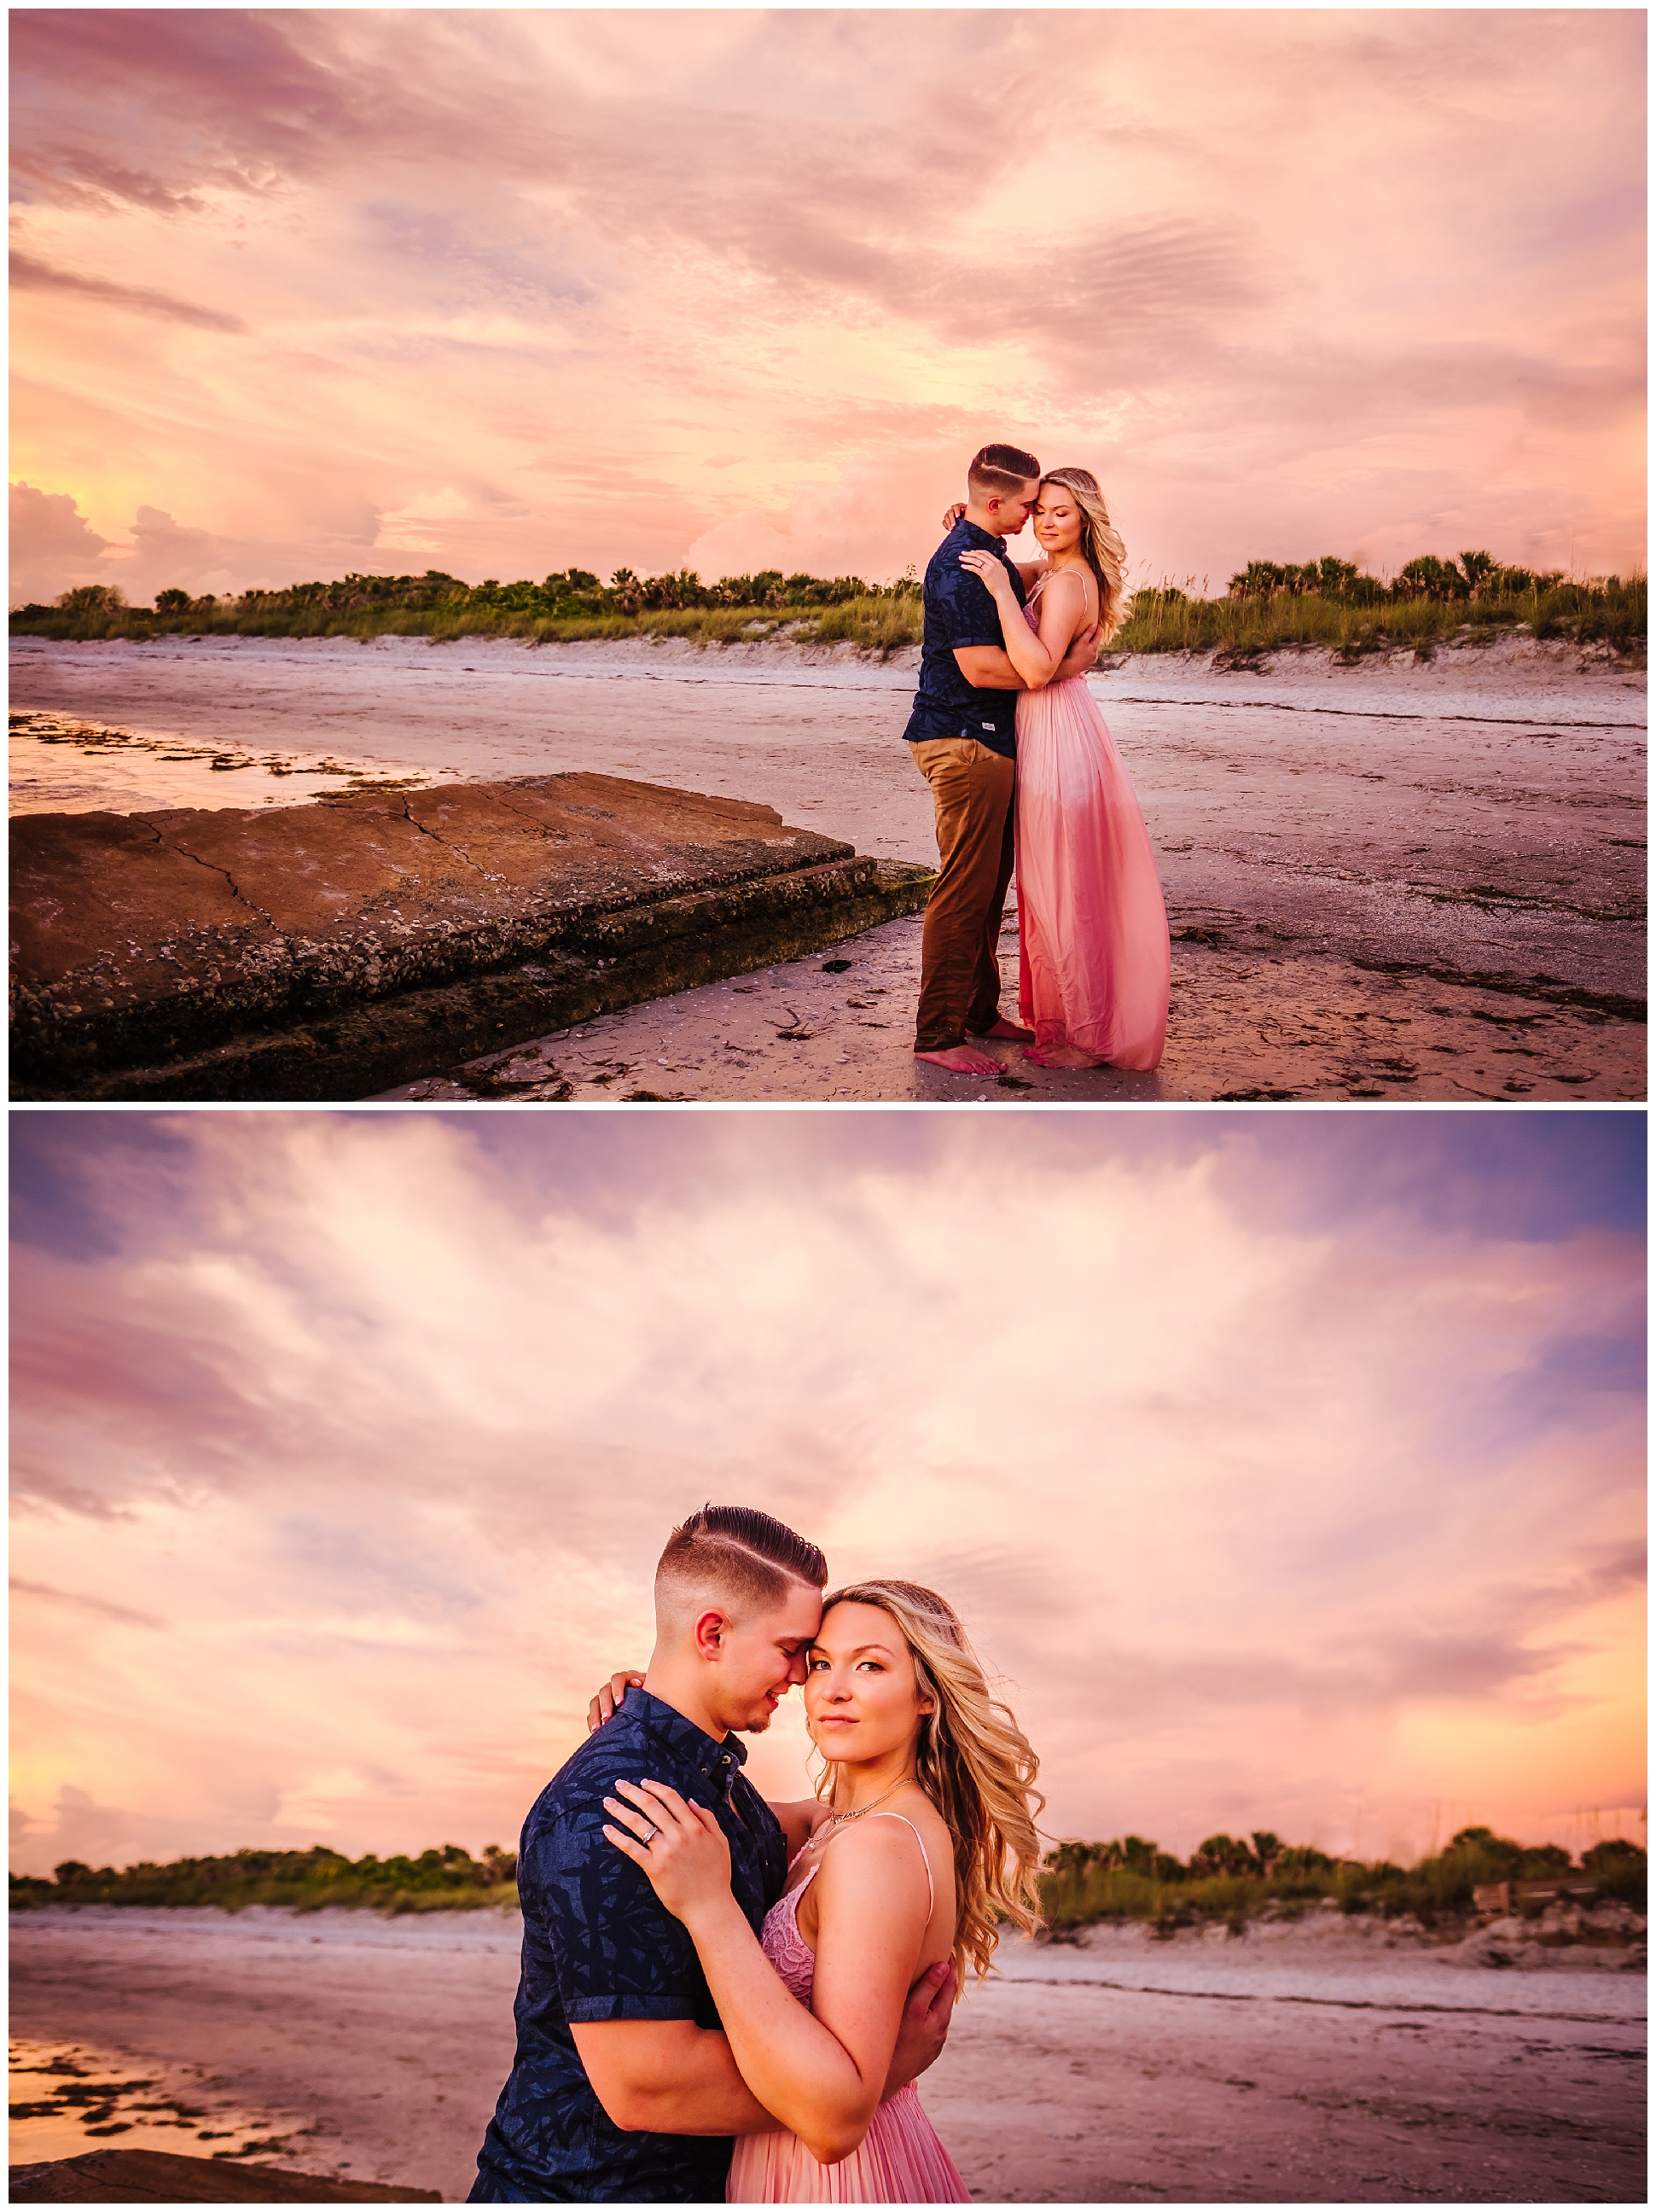 fort-desoto-engagement-photos-florida-beach-sunset_0249.jpg